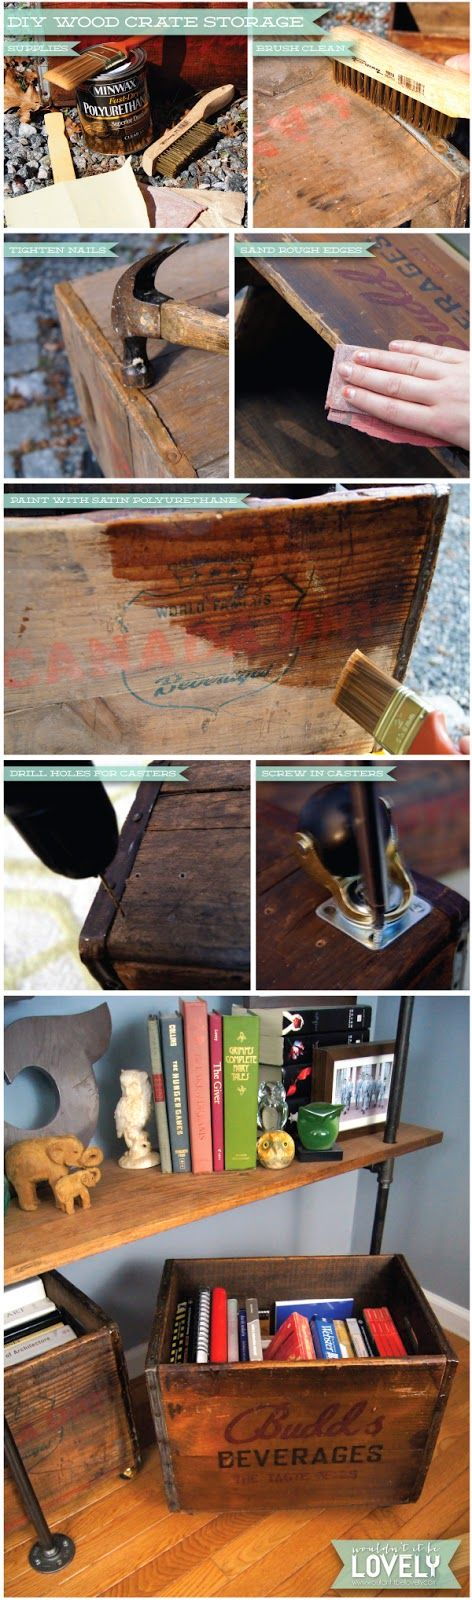 Wouldn't it be Lovely: DIY Vintage Rolling Wood Crates